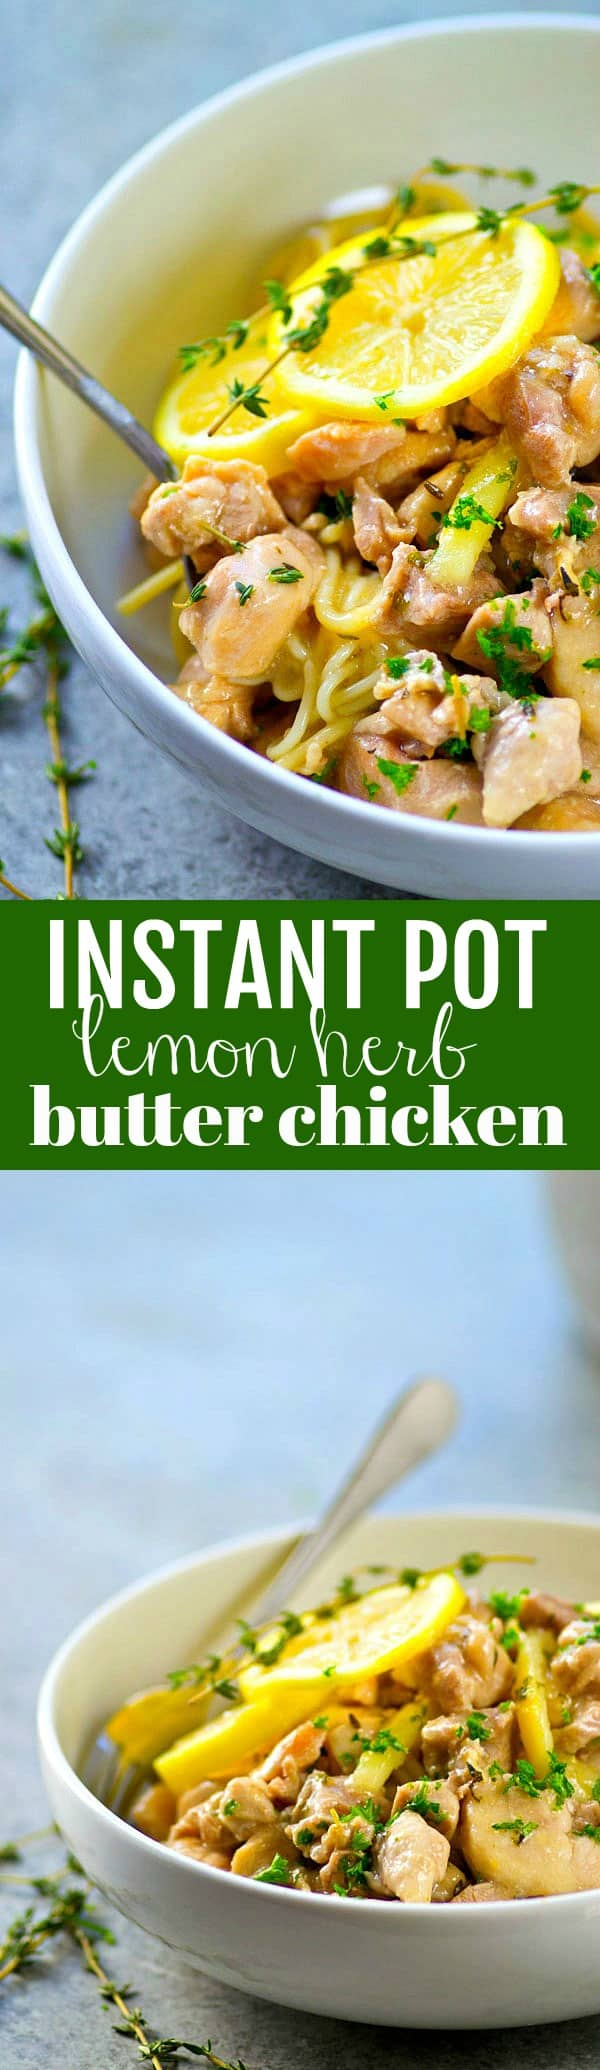 Incredibly flavorful, fall-apart tender lemon herb butter chicken is made in MINUTES in the instant pot and so good piled over hot noodles or rice!